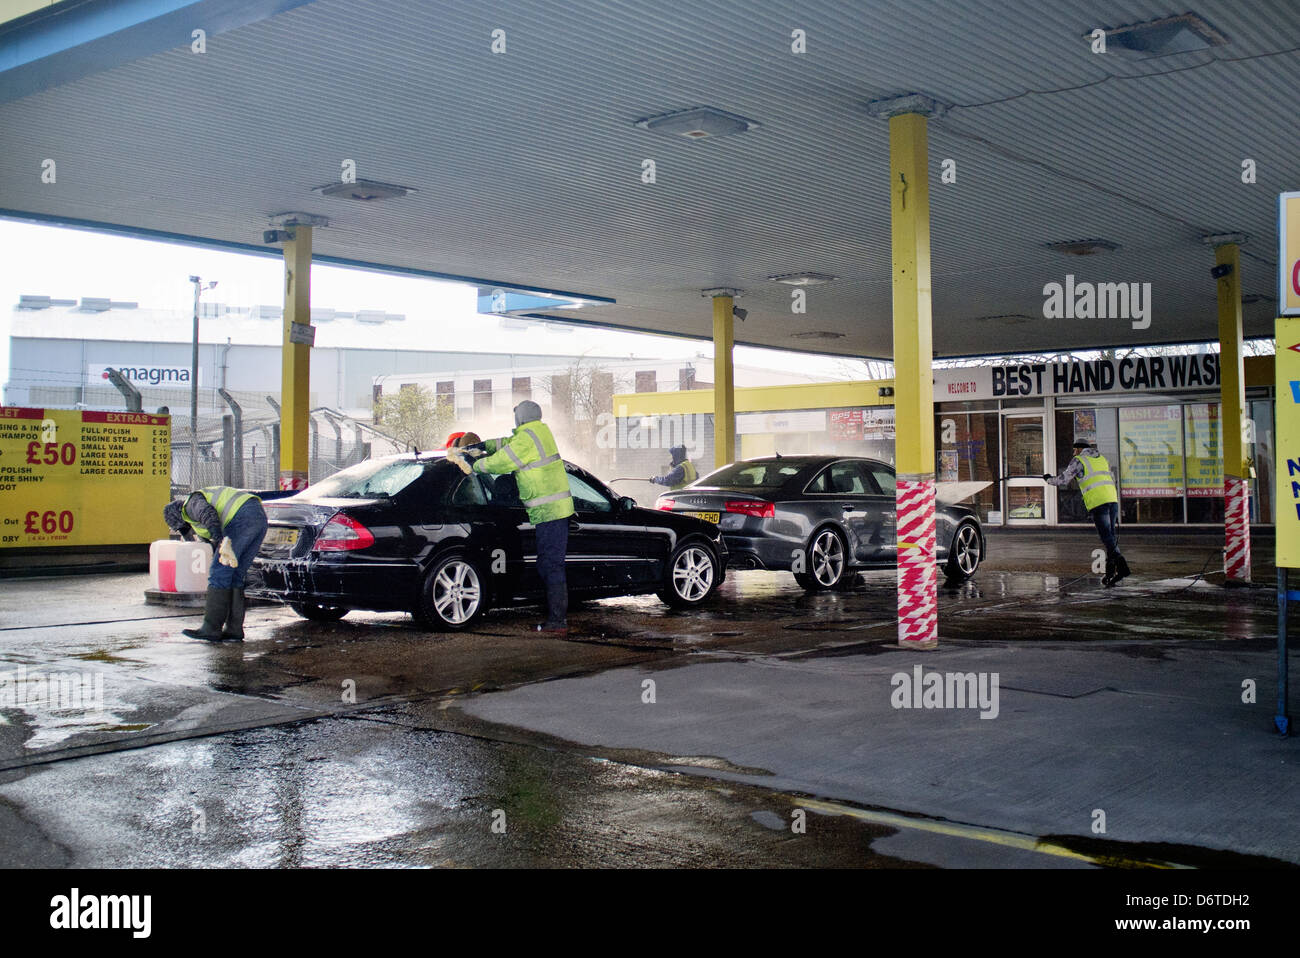 drive thru hand car wash and valet - Stock Image